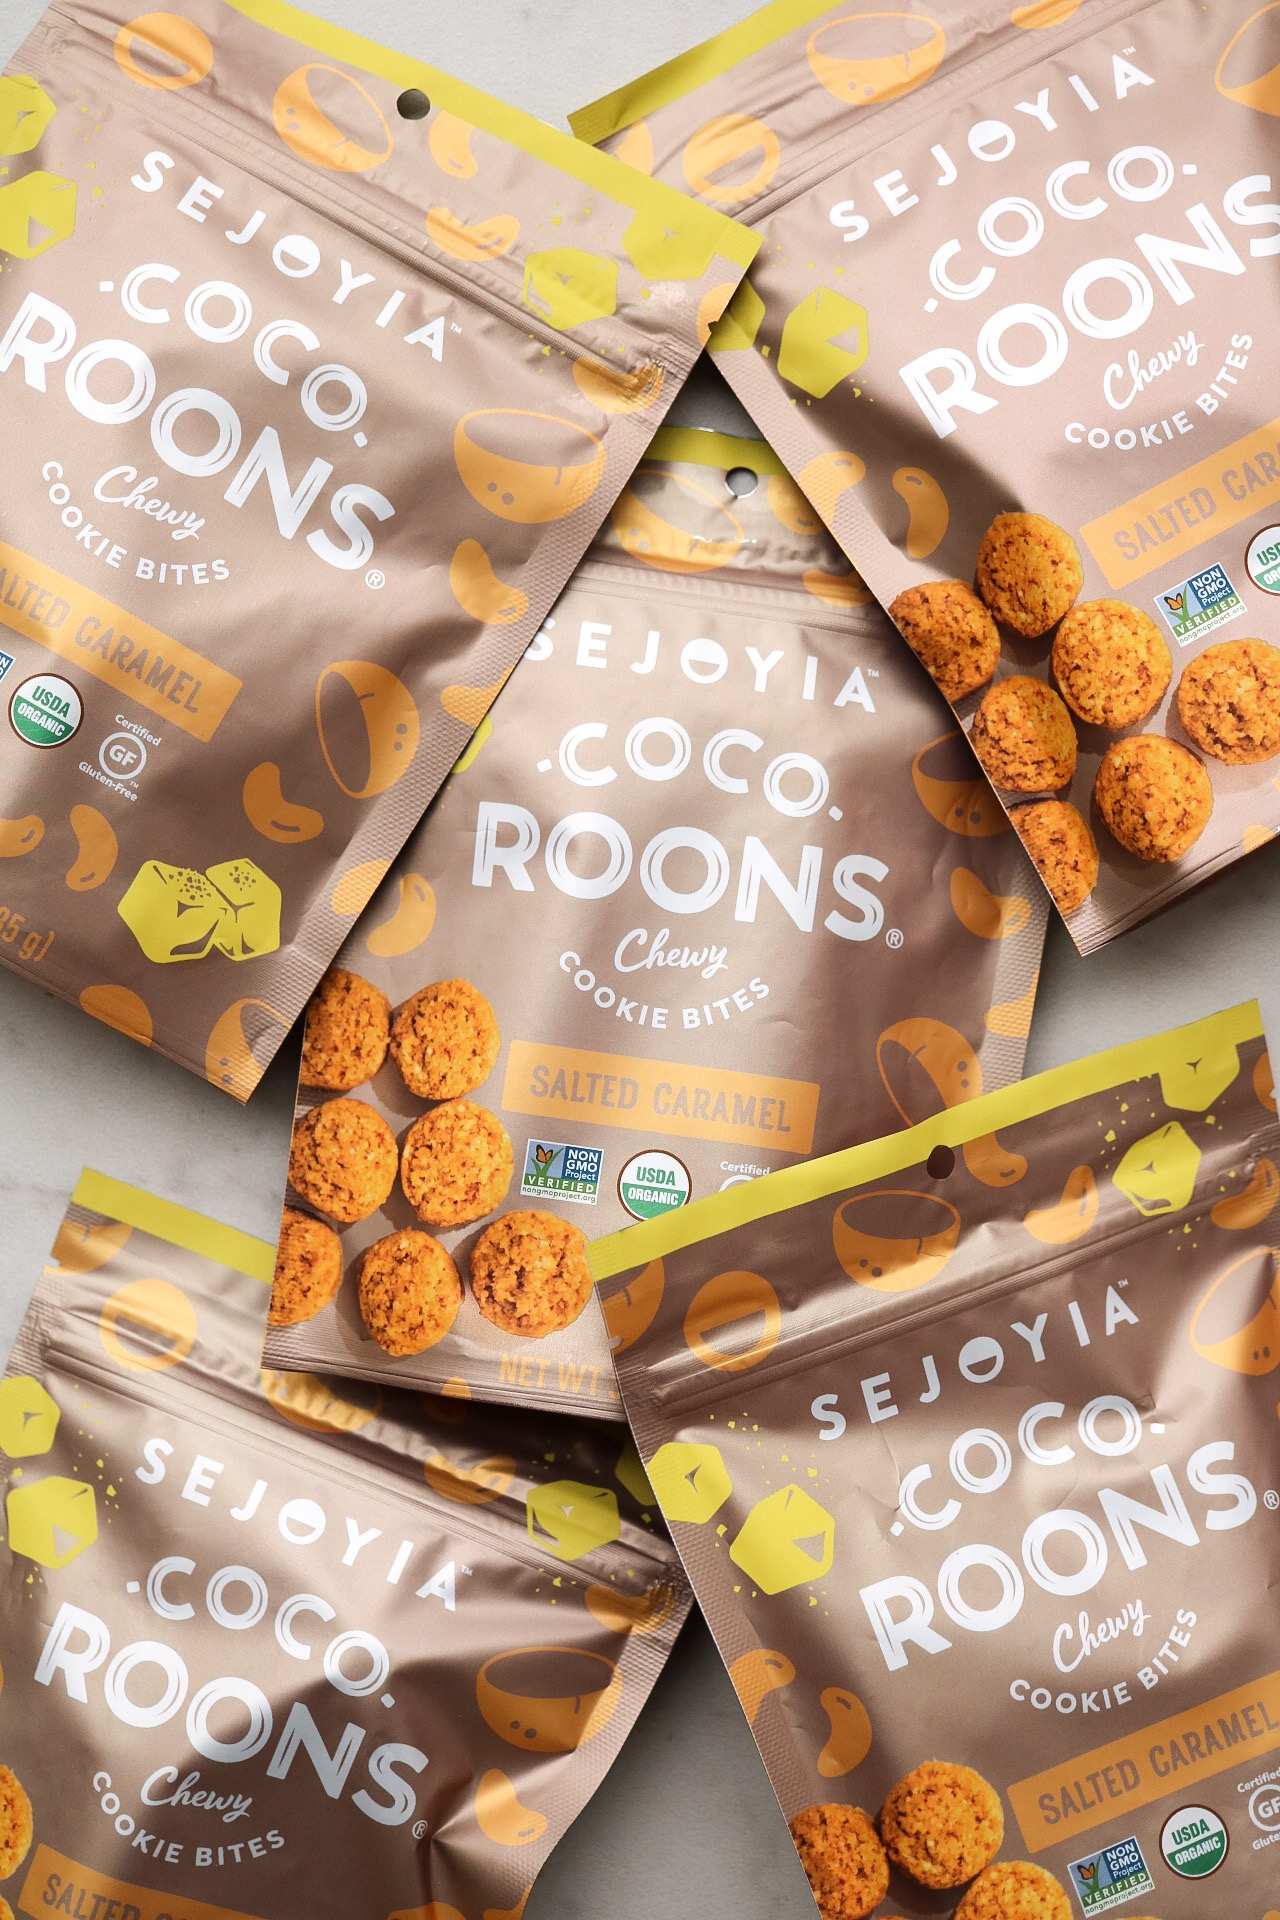 The star of the show! These coco-roons add such a nice chewiness to the brownies, as well as the salted caramel flavor we're looking for.